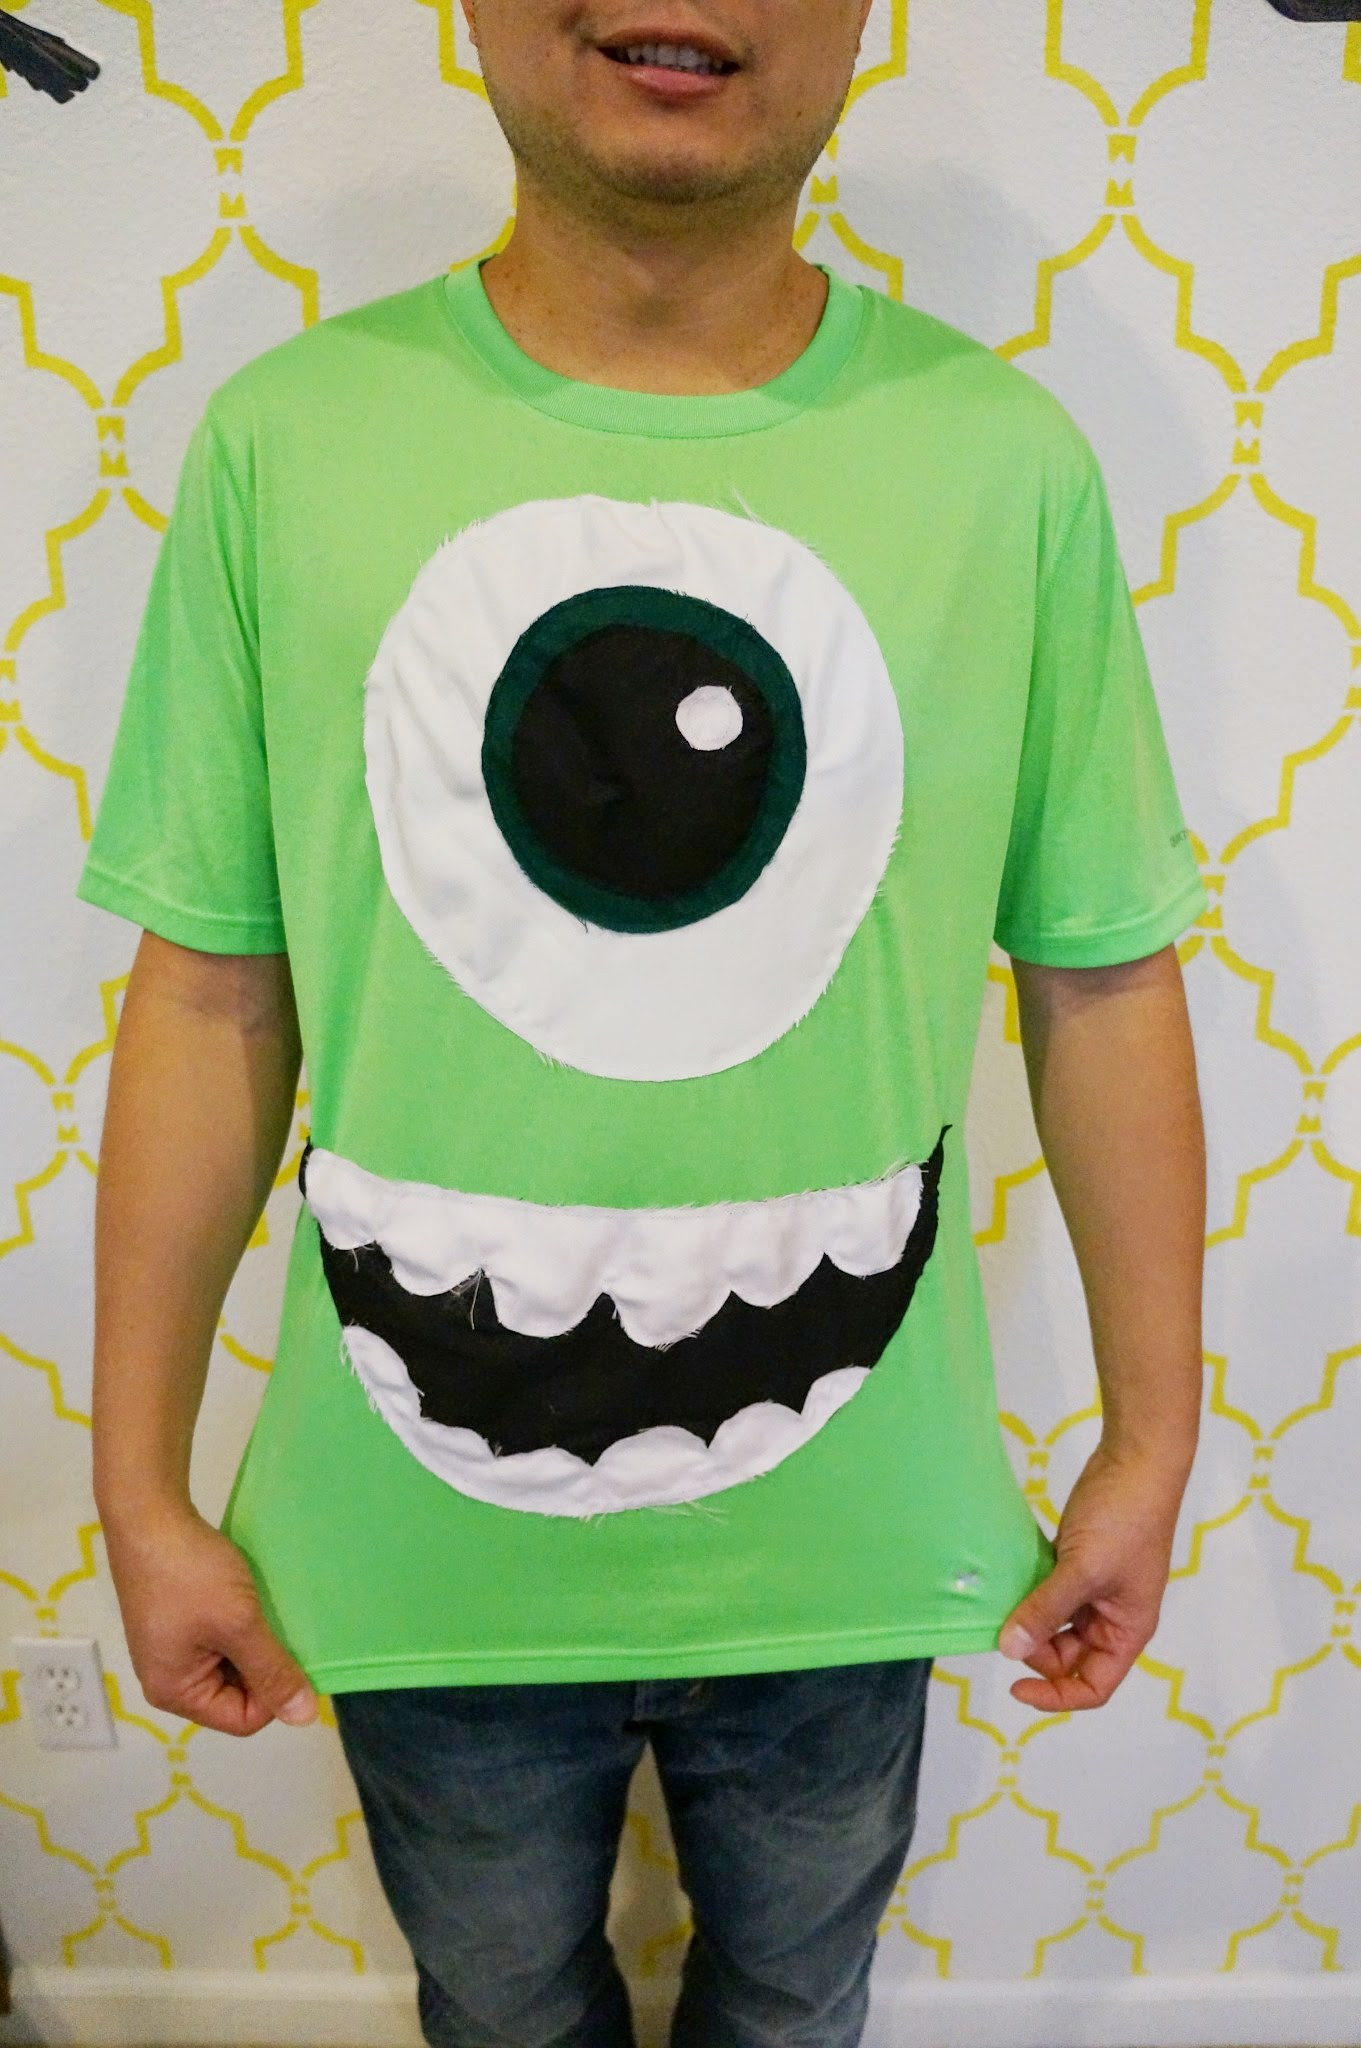 Best ideas about DIY Monsters Inc Costume . Save or Pin DIY Monster's Inc Costumes Now.